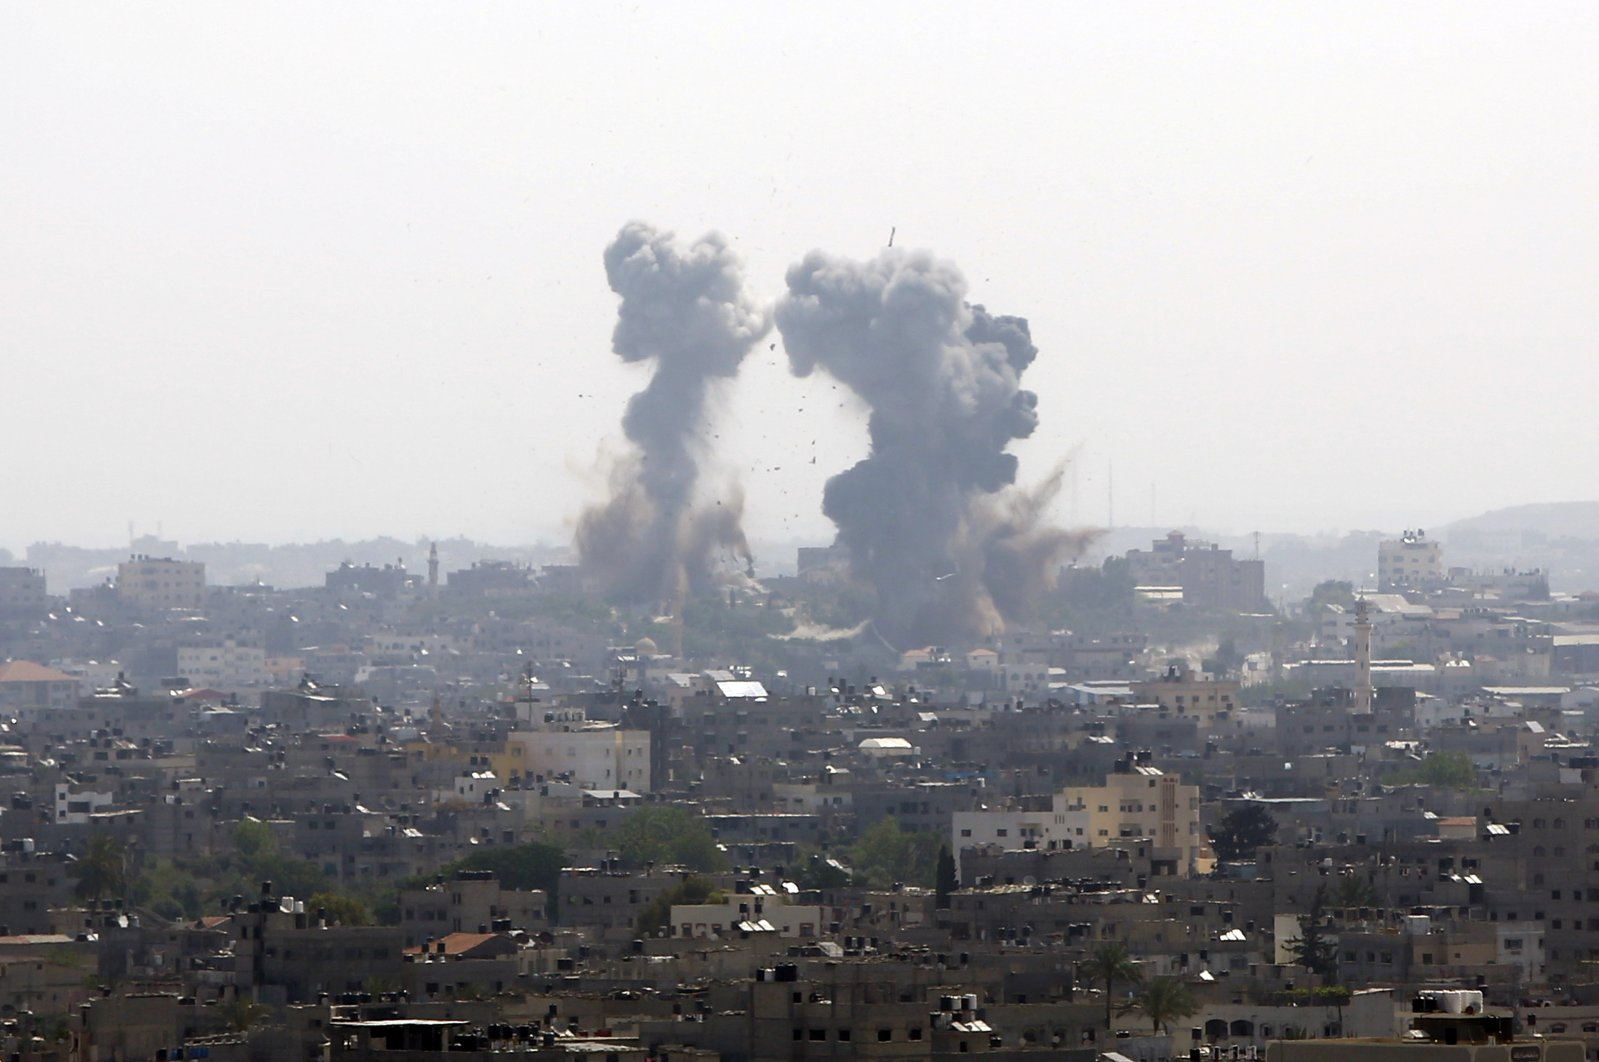 Smoke rises after an Israeli forces strike in Gaza City, Tuesday, May 11, 2021. (AP Photo)